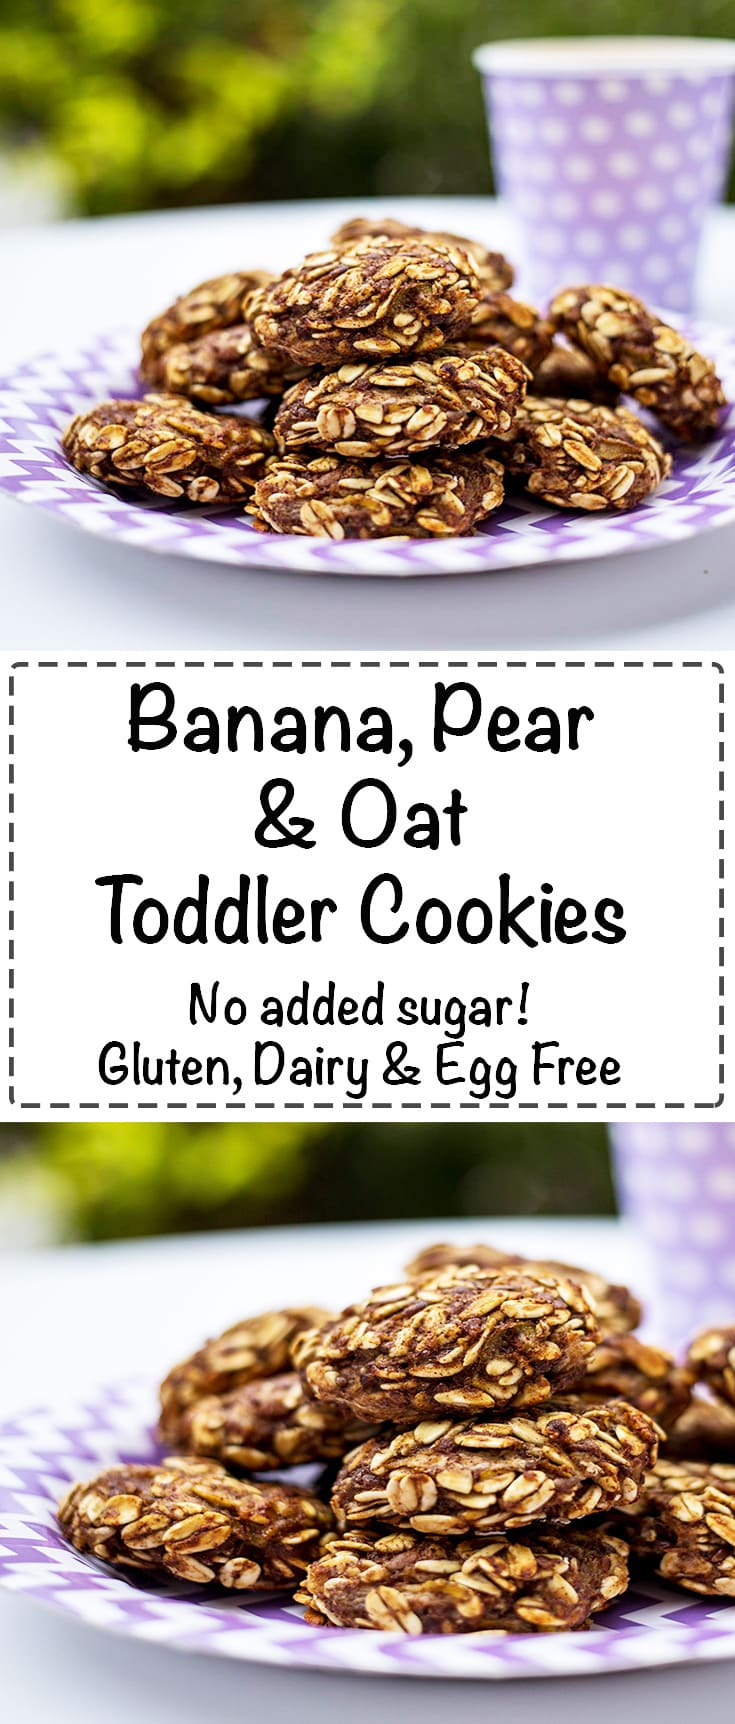 Banana, Pear & Oat Toddler Cookies. No added sugar or sweetener. Healthy, easy, allergy friendly and your toddlers will love them! #glutenfree #sugarfree #glutenfreecookies #dairyfree #eggfree #vegan #glutenfreebaking #eggfreebaking